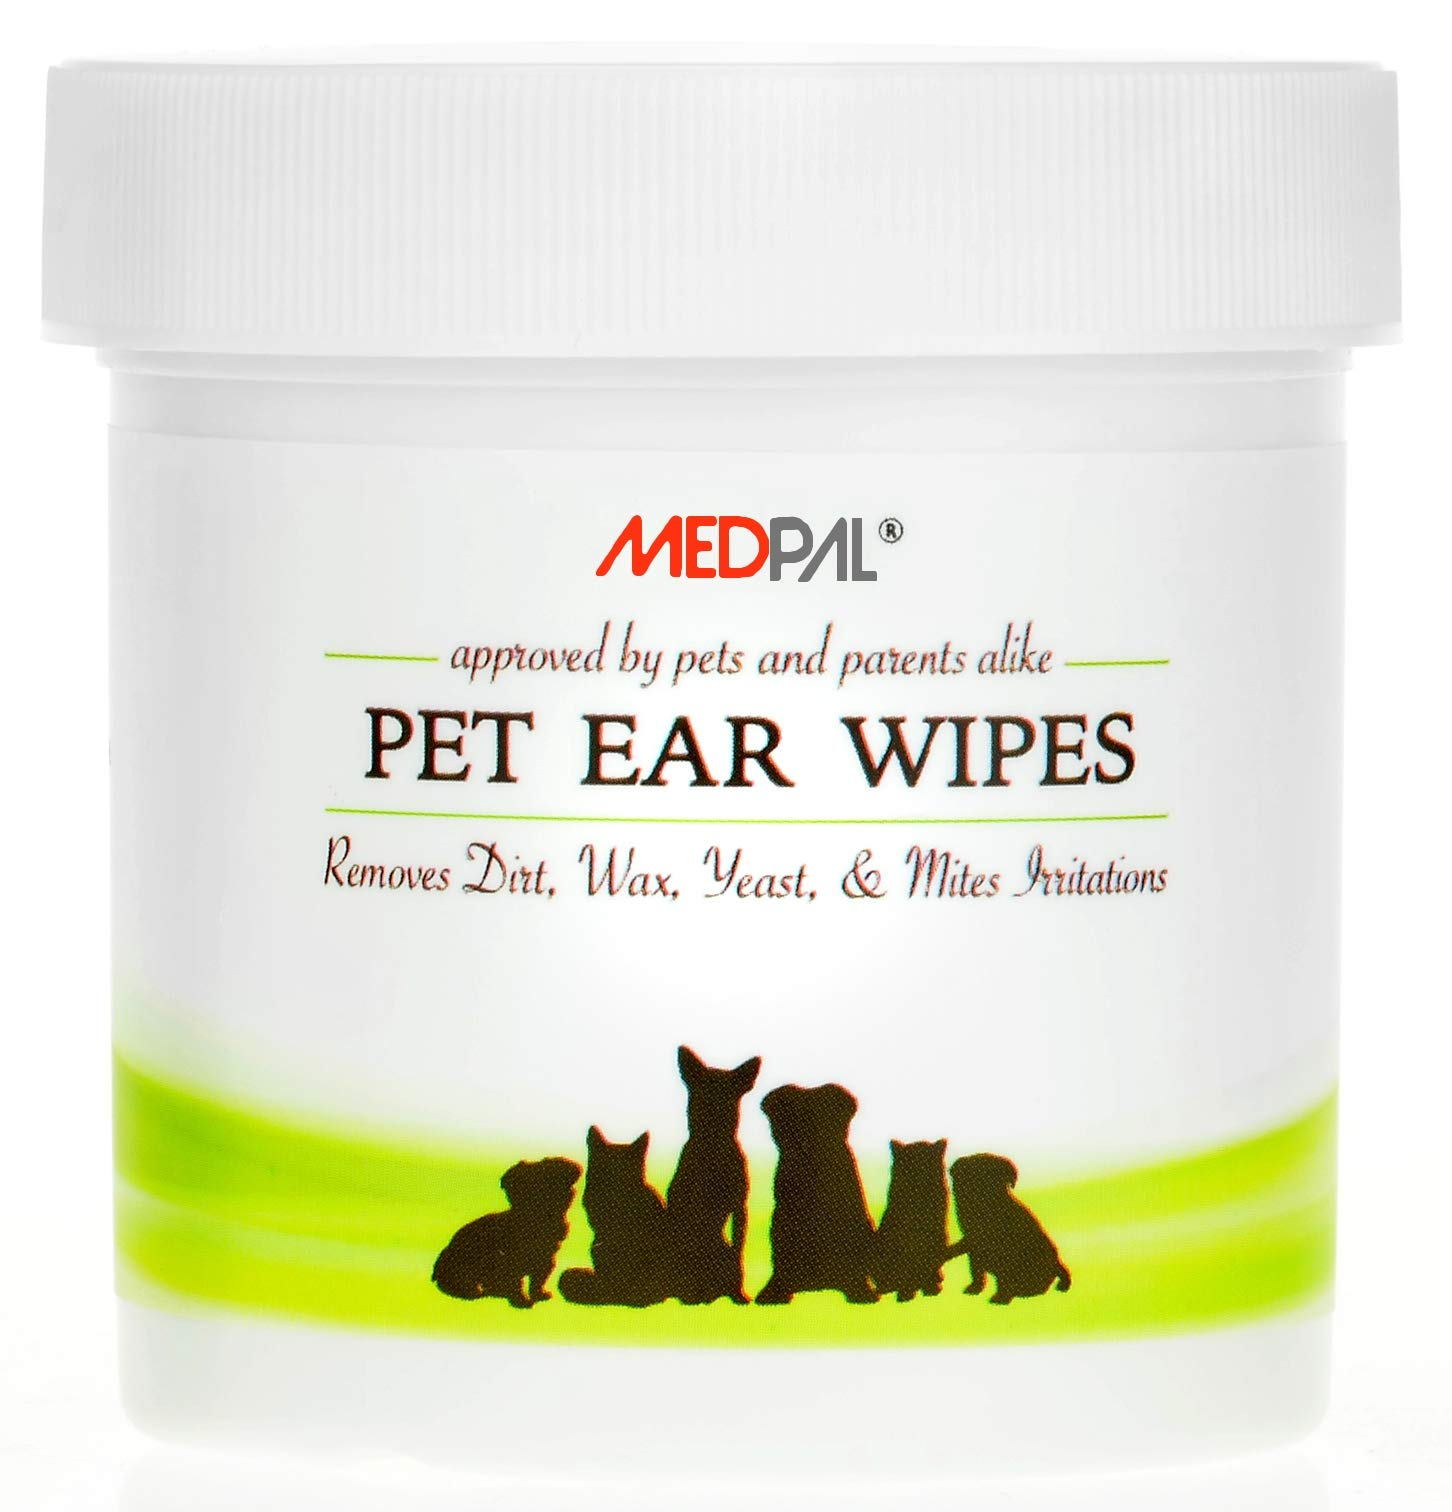 MedPal Professional Pet Ear Cleansing Wipes for Dogs and Cats - Dog Ear Wipes Used to Stop Itching, Prevent Mites, Yeast & Ear infections. - Advanced Formula! - 100 Count by MedPal